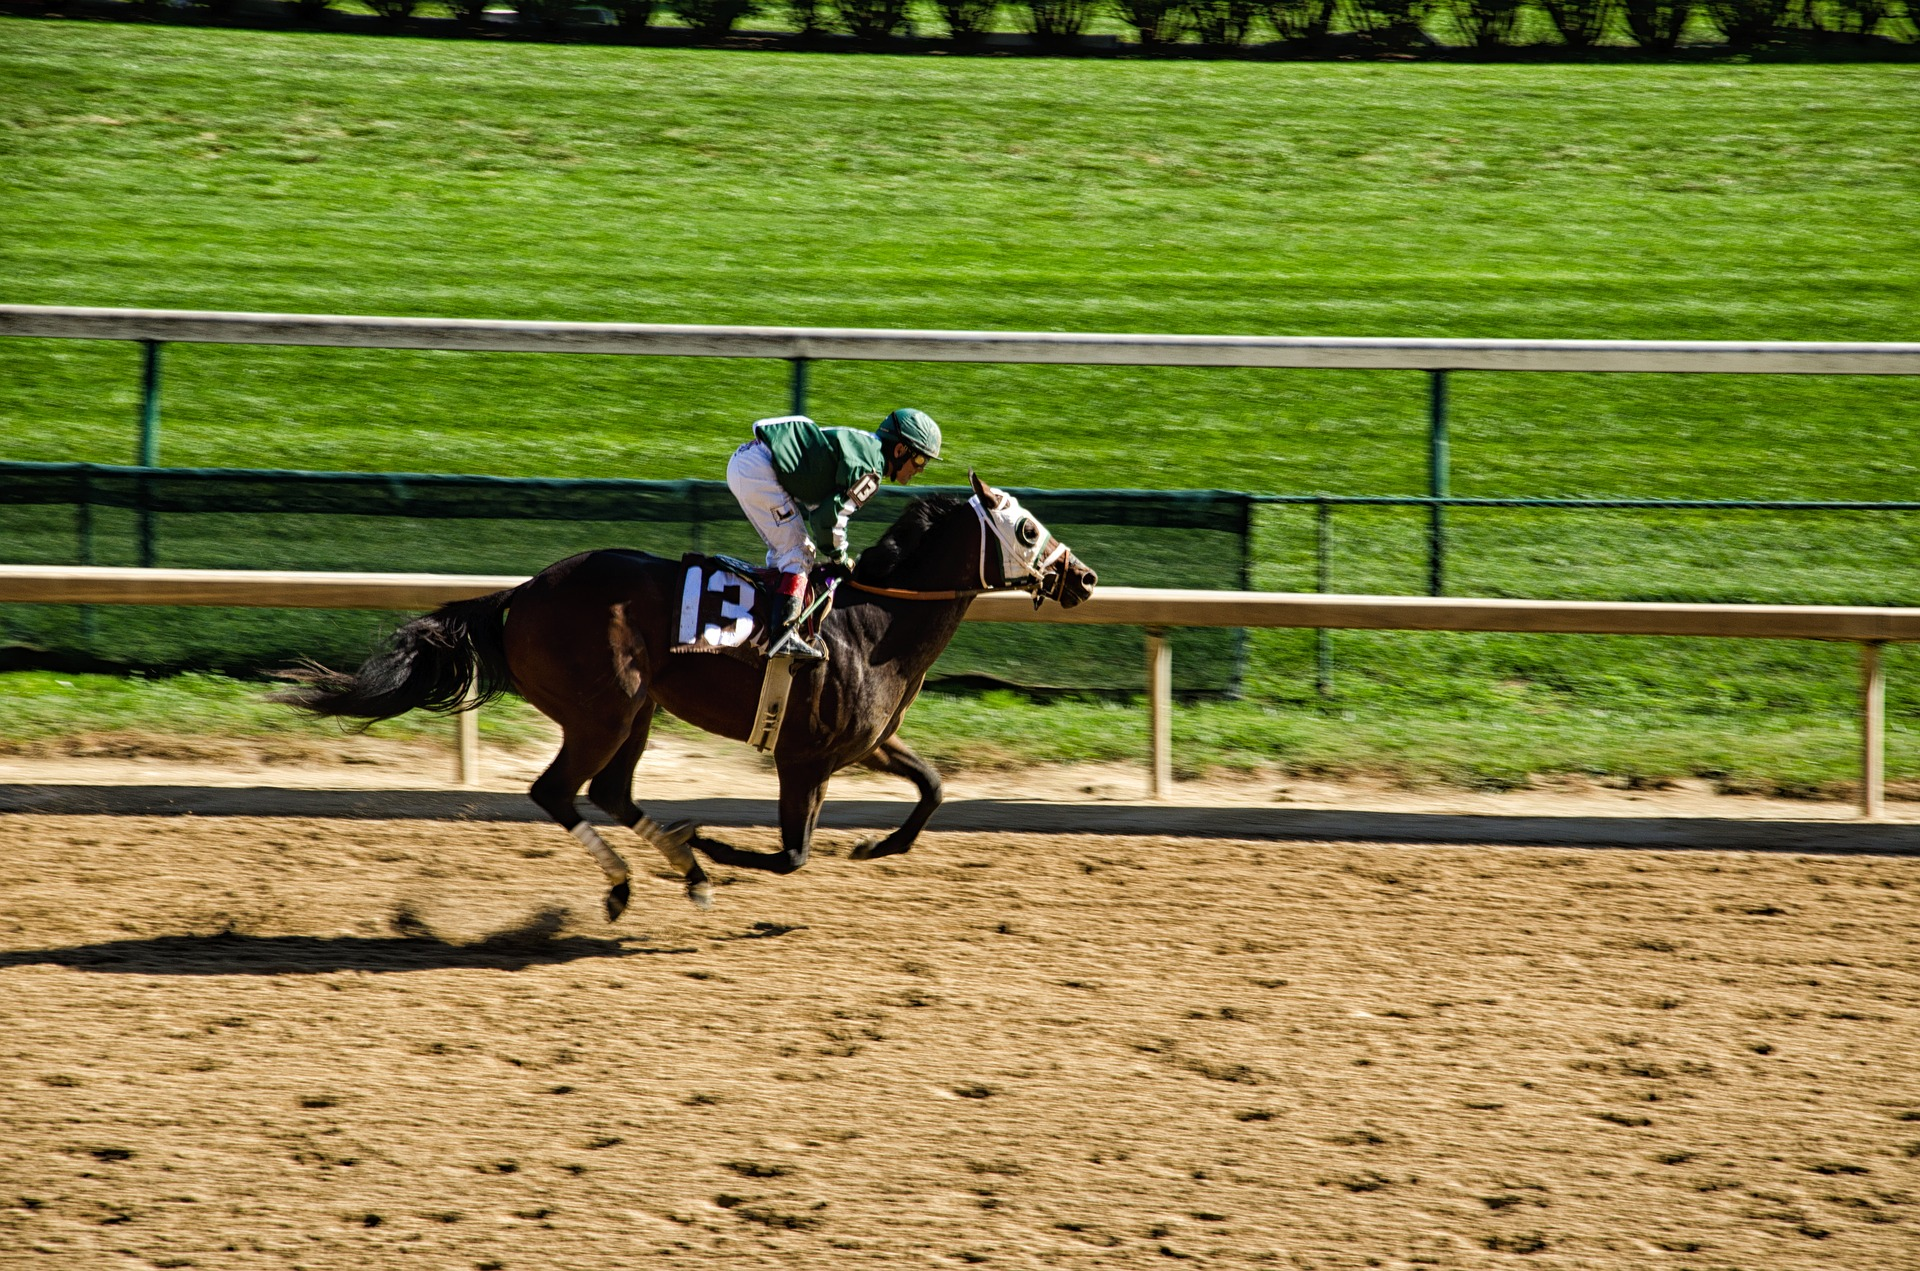 Man on on a horse racing in Louisville Kentucky at Churchill Downs - TAB Bank